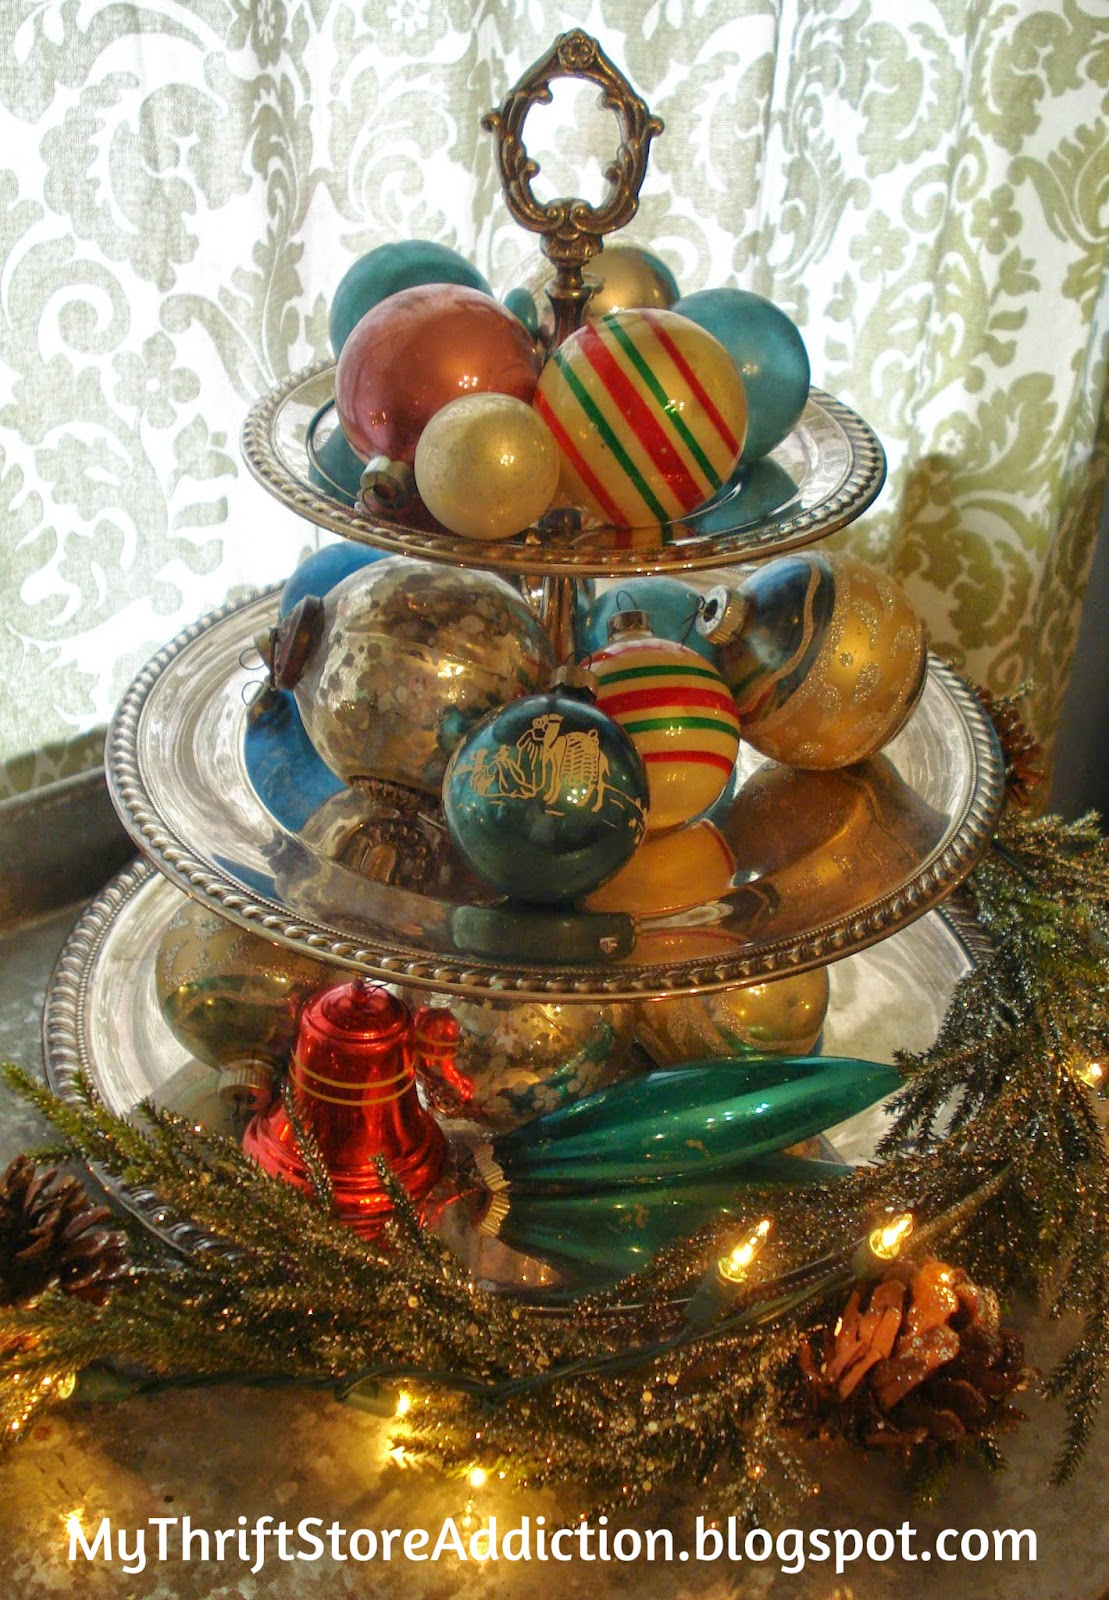 Thrifty Christmas tips